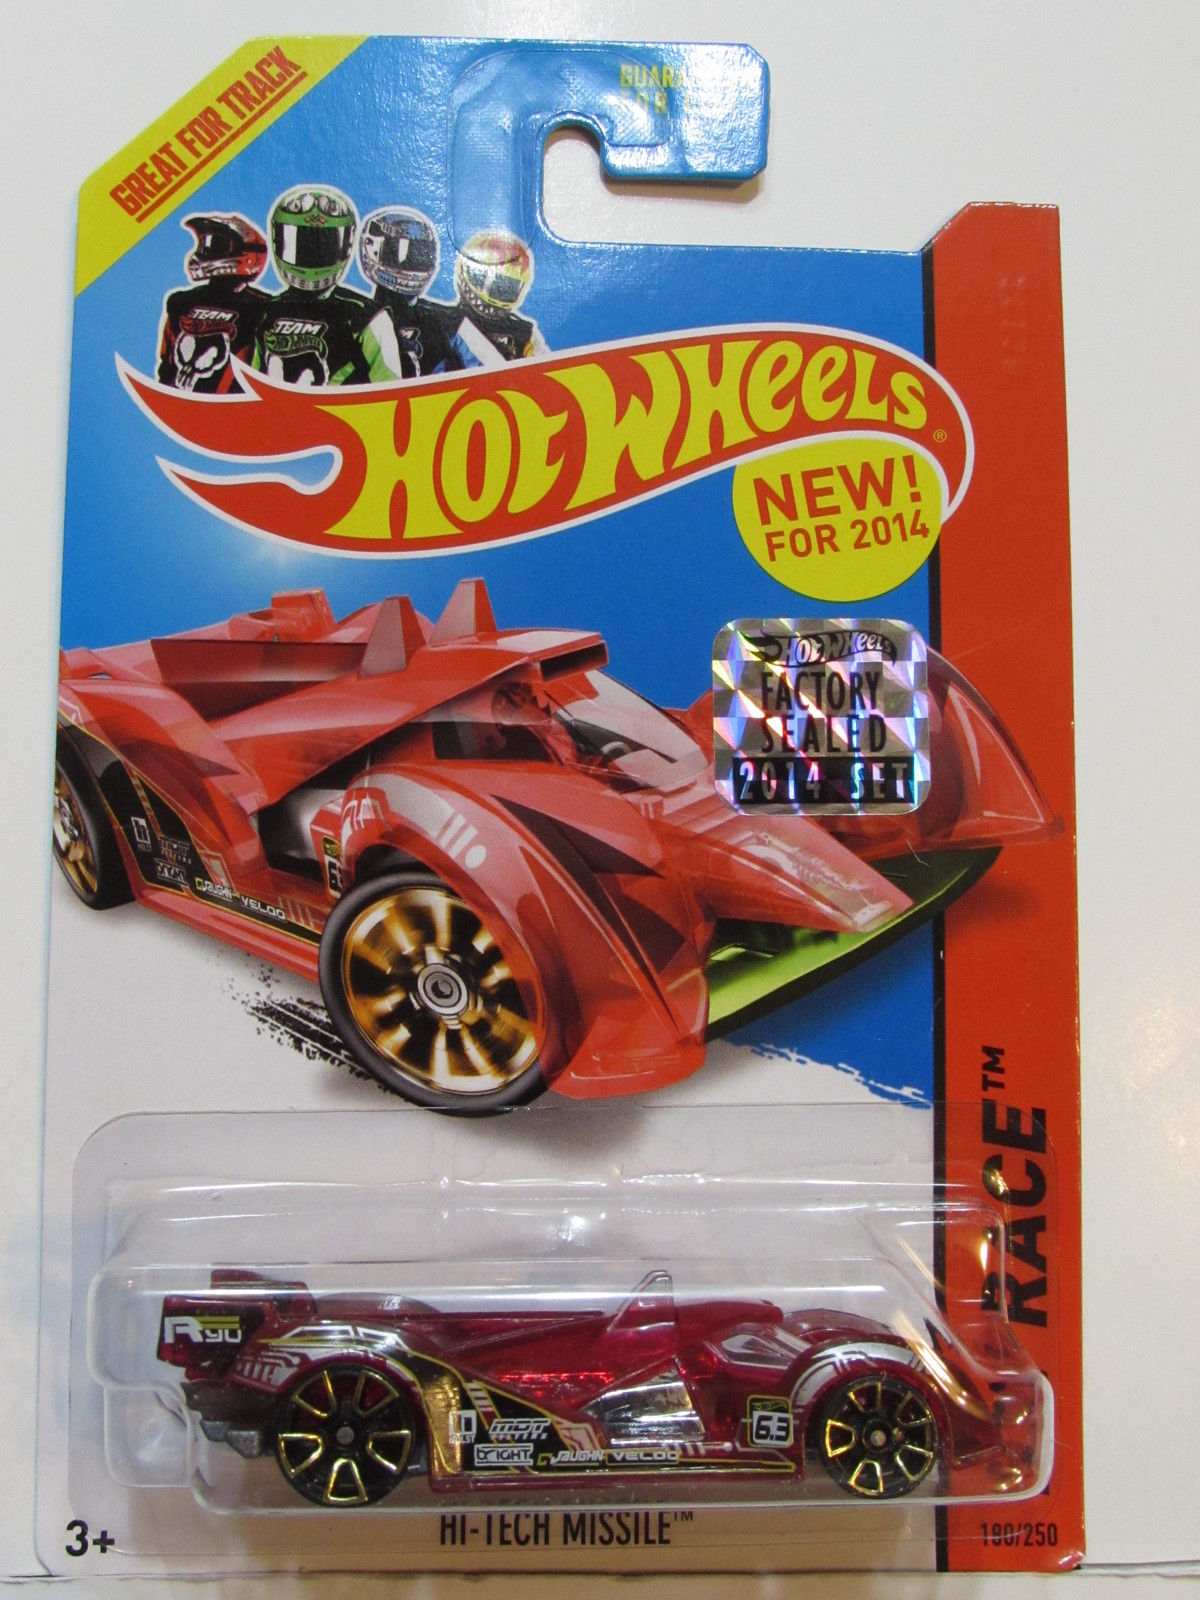 HOT WHEELS 2014 HW RACE - X-RAYCERS HI-TECH MISSILE FACTORY SEALED